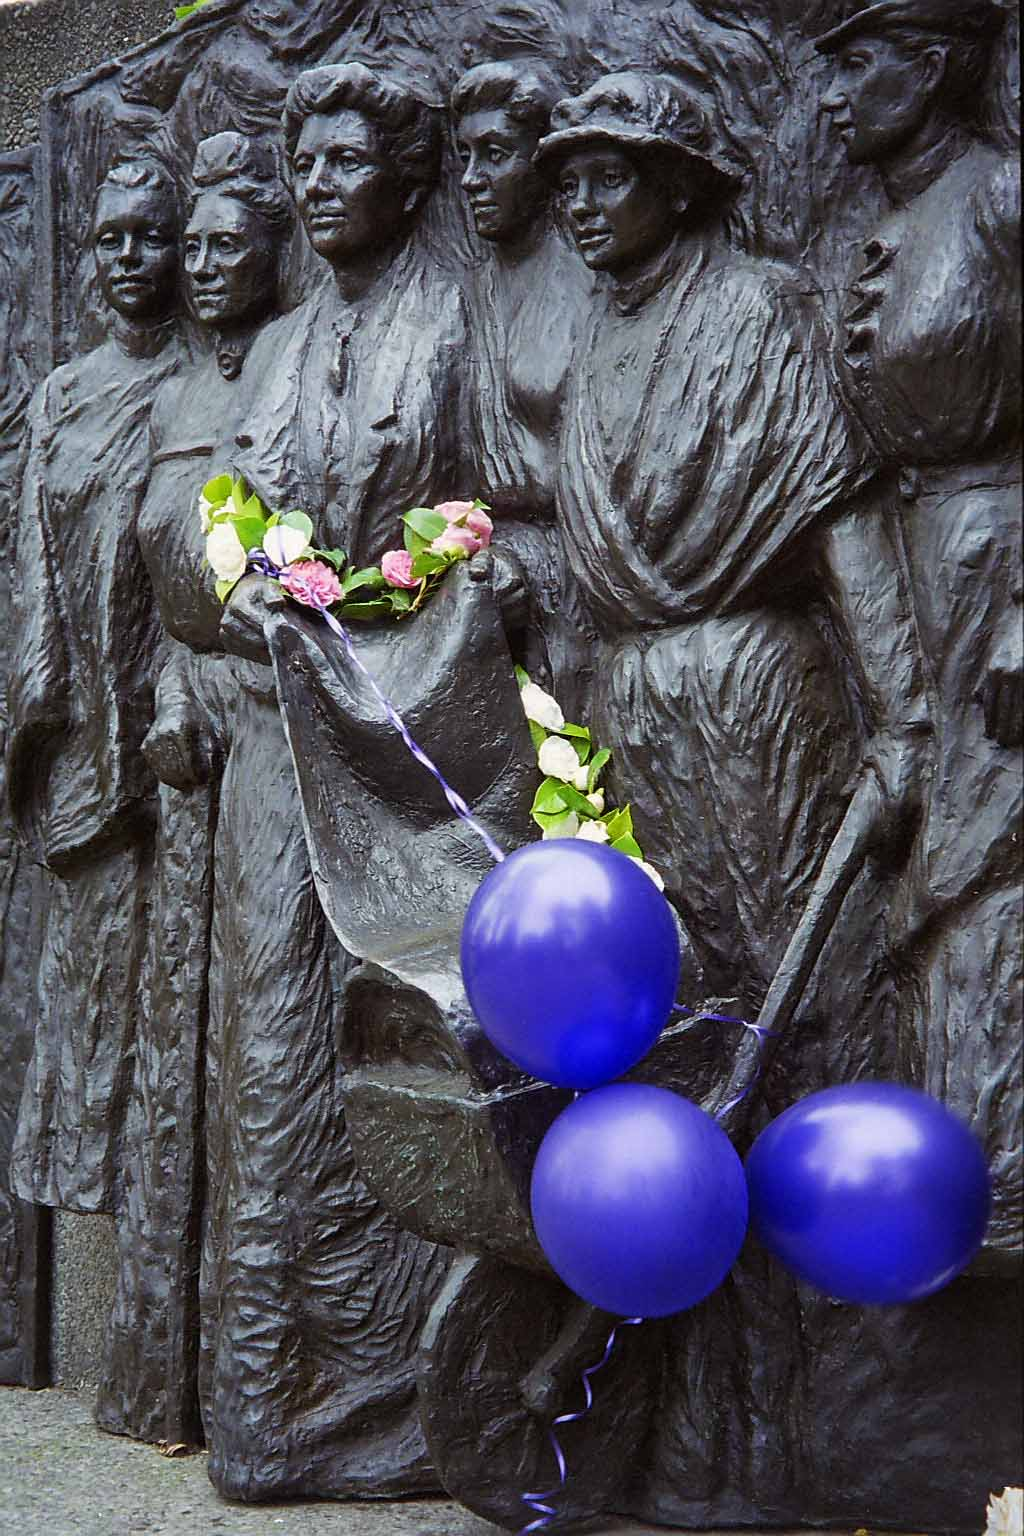 Kate Sheppard: suffrage hero or that bloody woman?